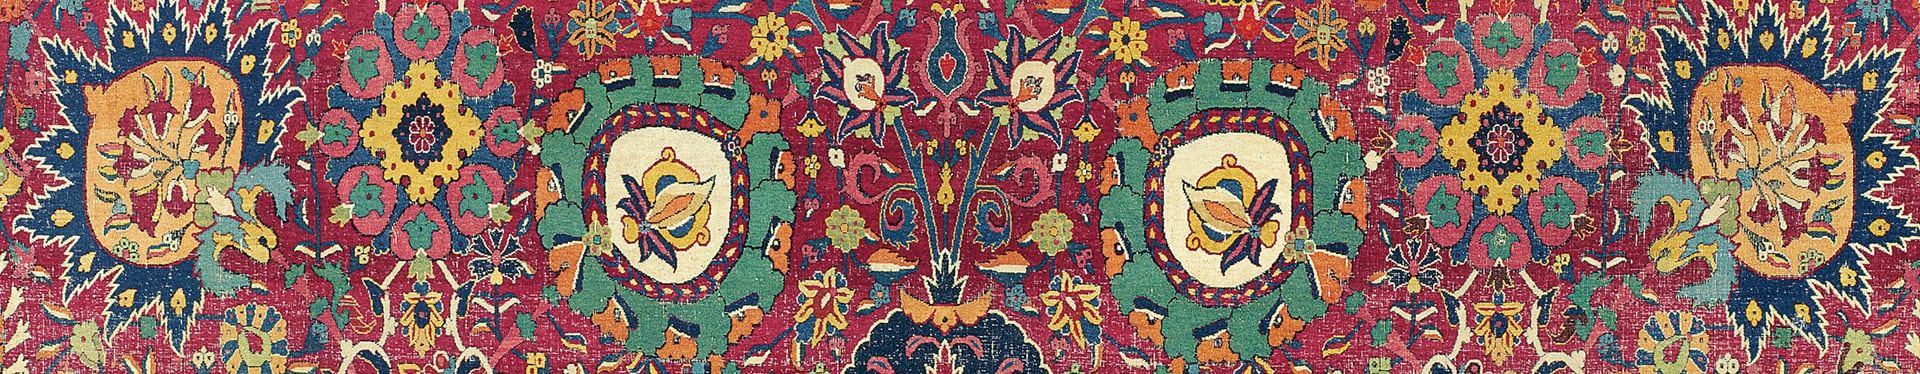 rugs-and-carpets-christies-department-banner-new-2019_45_1_20190404125231.jpg